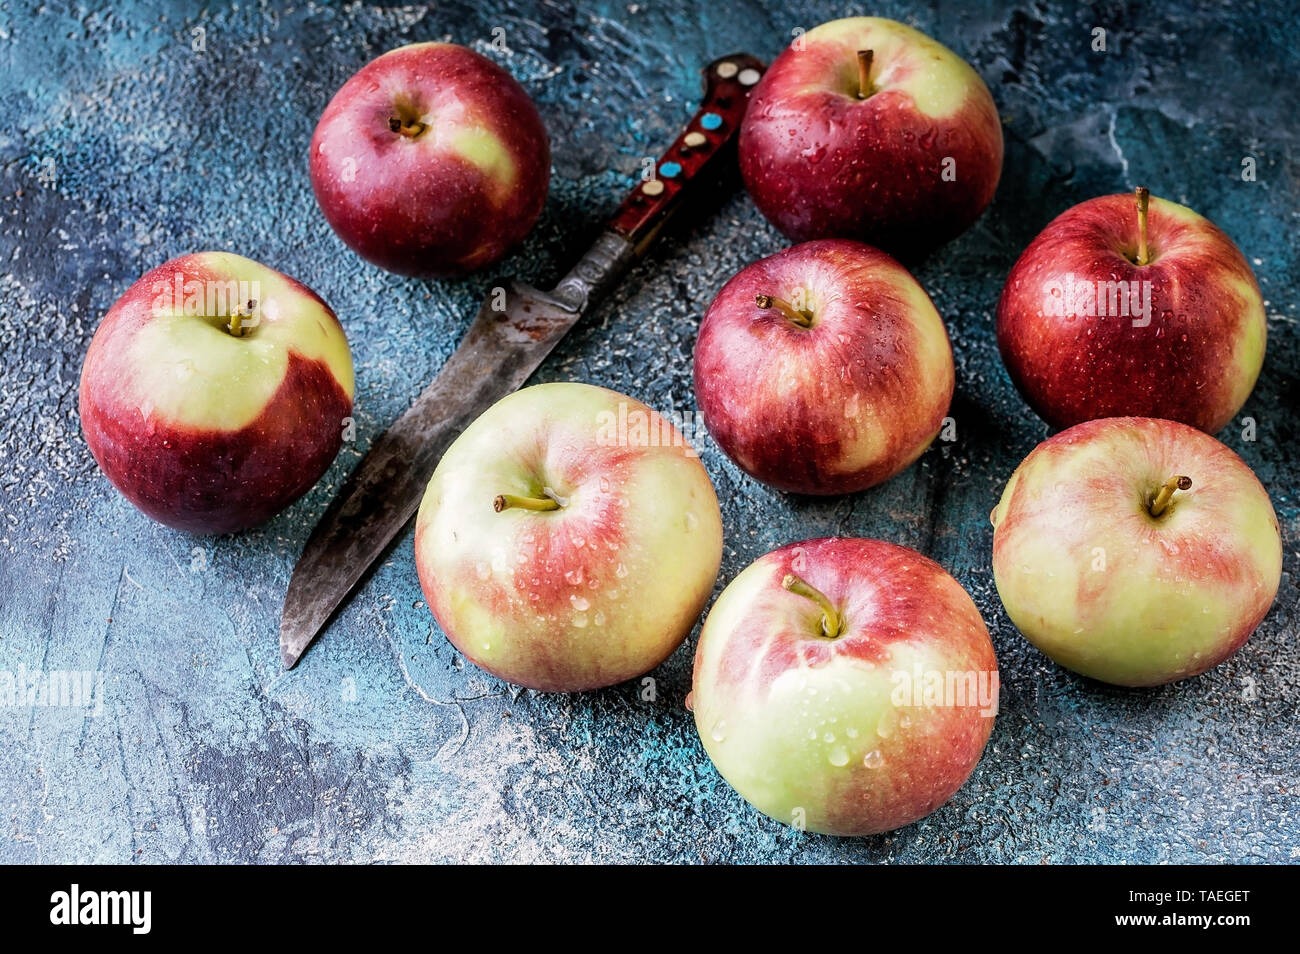 Red apples and knife on dark blue concrete background. Autumn harvest - Stock Image